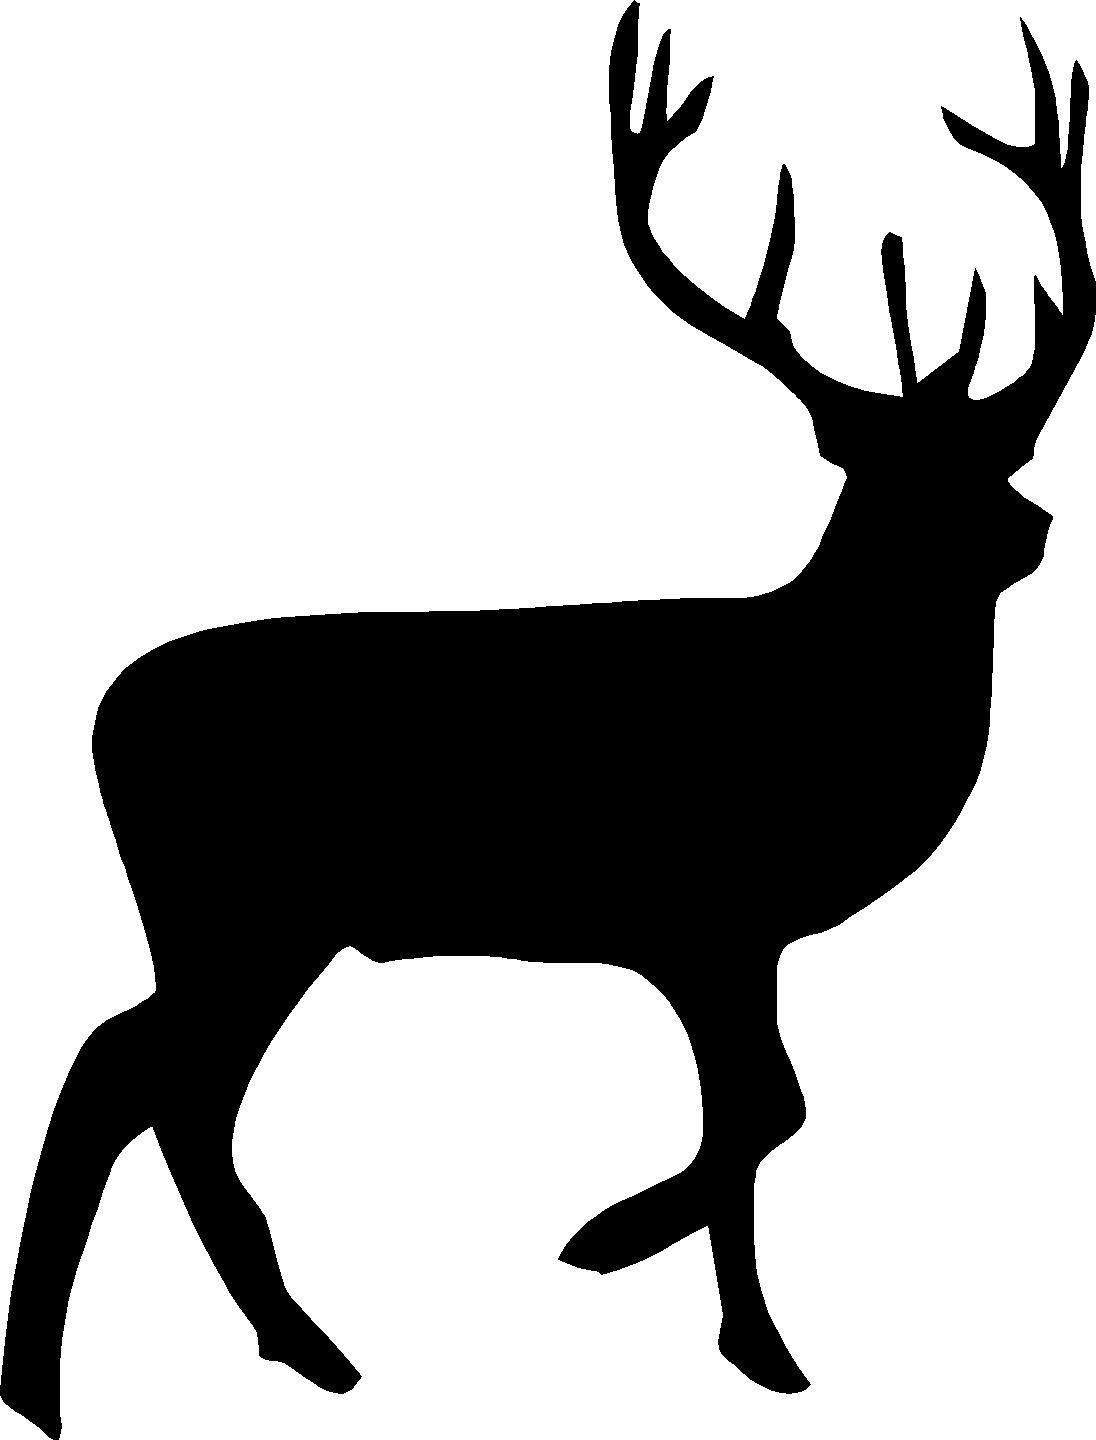 1096x1440 Jumping Deer Clipart